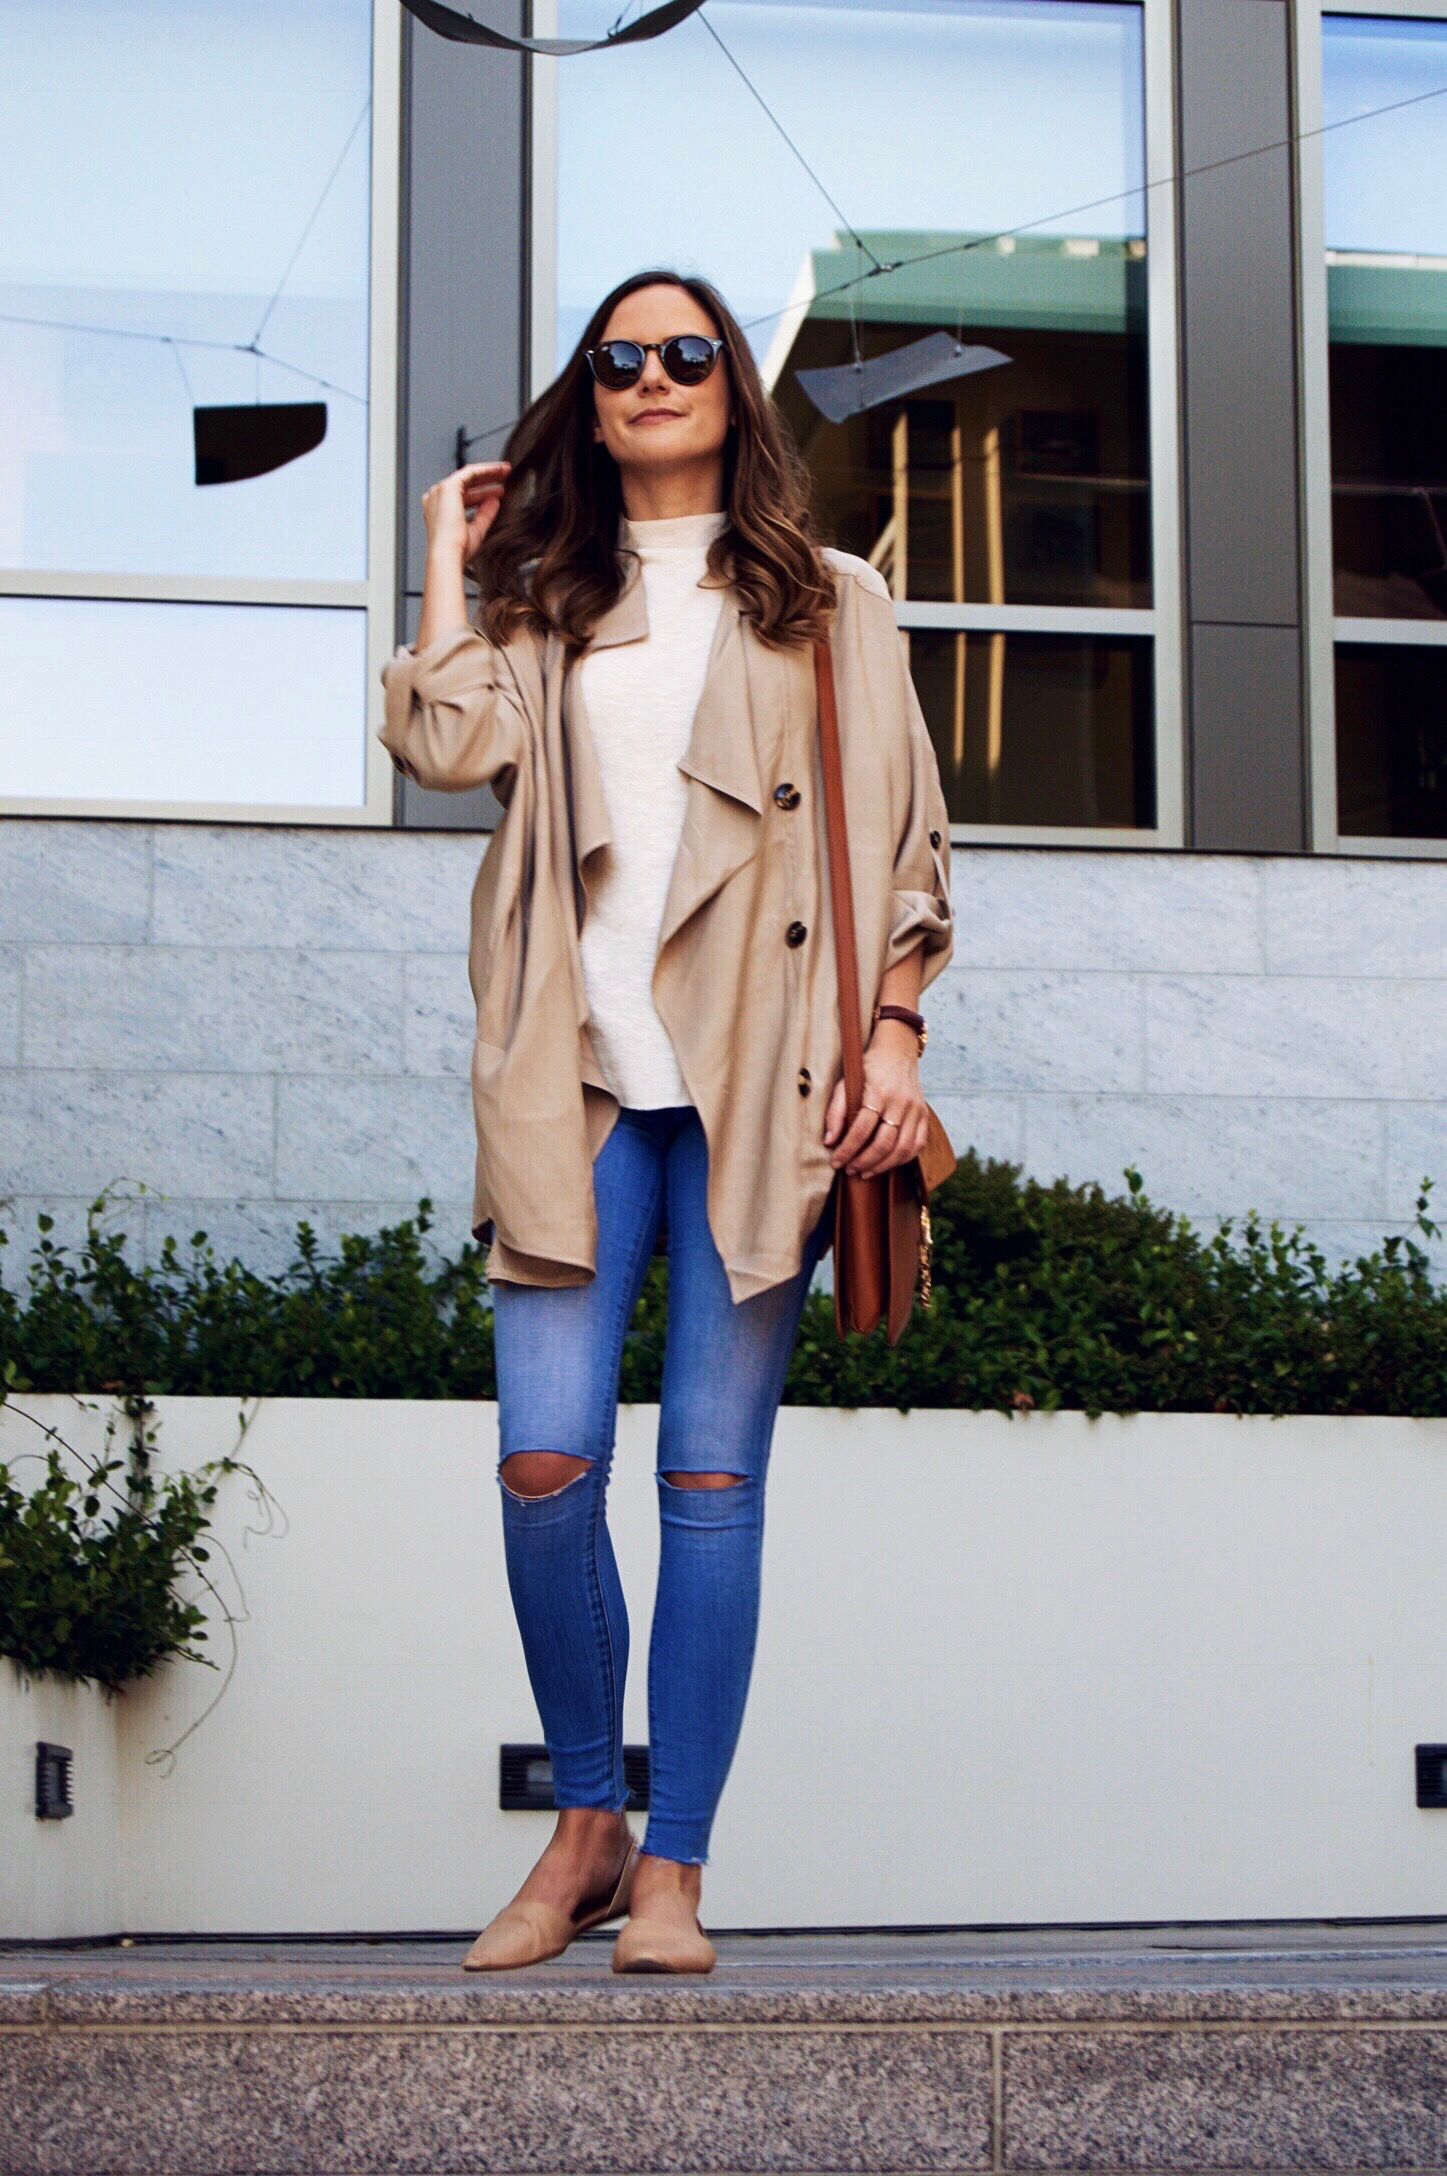 Shop the Look Below. Top:  Nordstrom . Jacket:  J.Coda Clothing  c/o. Jeans:  Nordstrom Rack . Shoes:  Vince  (sold out), similar  here . Bag:  SheIn  c/o. Watch:  Daniel Wellington c/o.Sunglasses:  Ray-Ban . Rings:  Gorjana  c/o